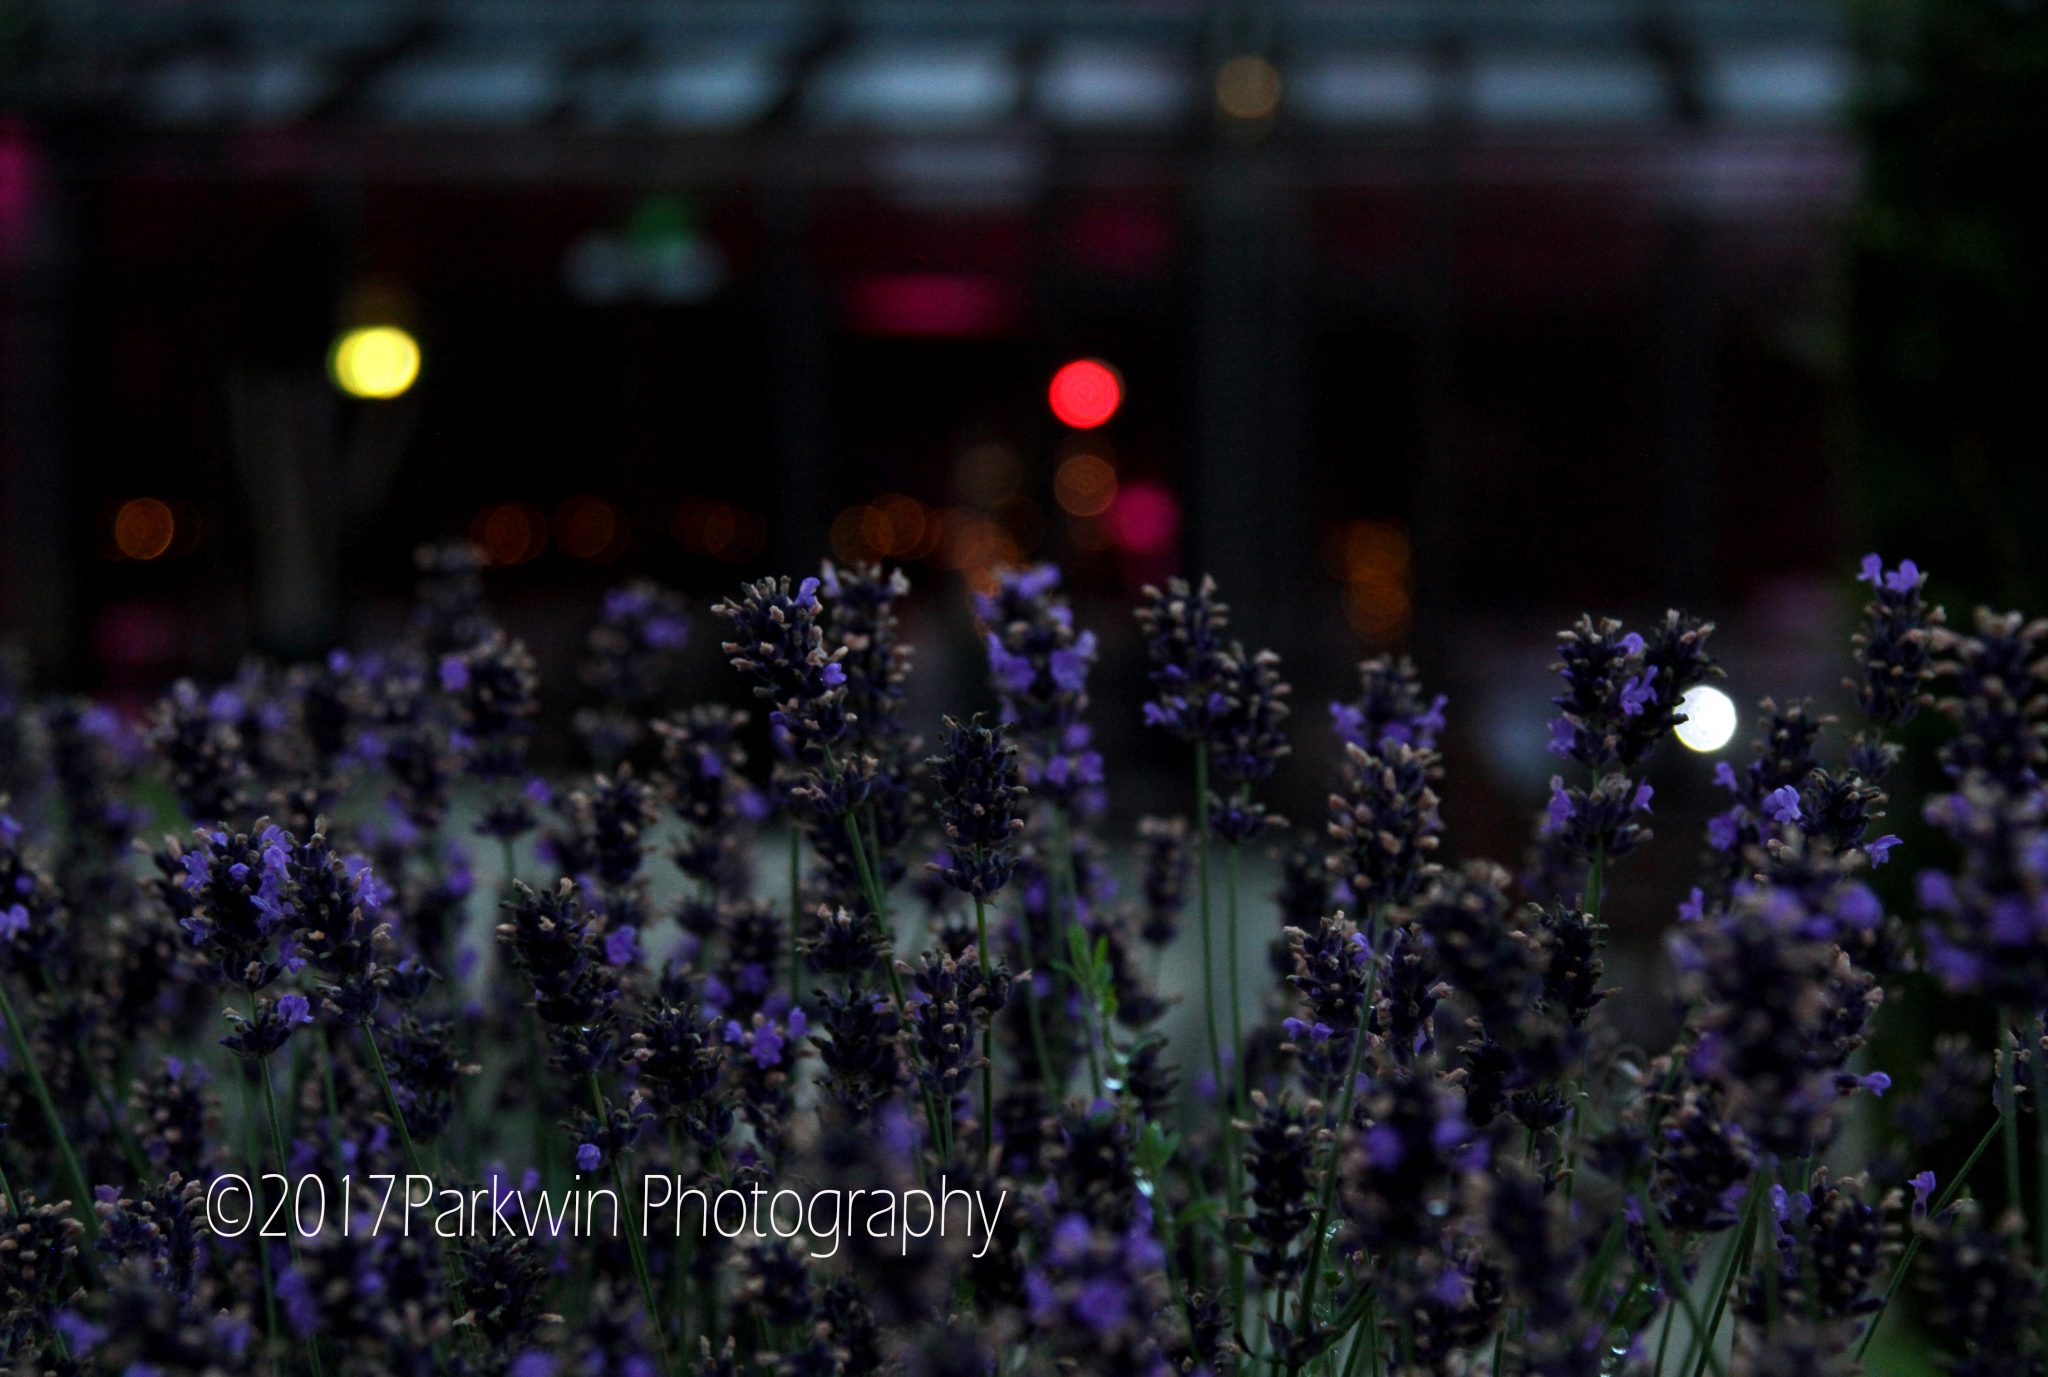 Evening photo of Lavender outside Pavilion at Fanhams Hall